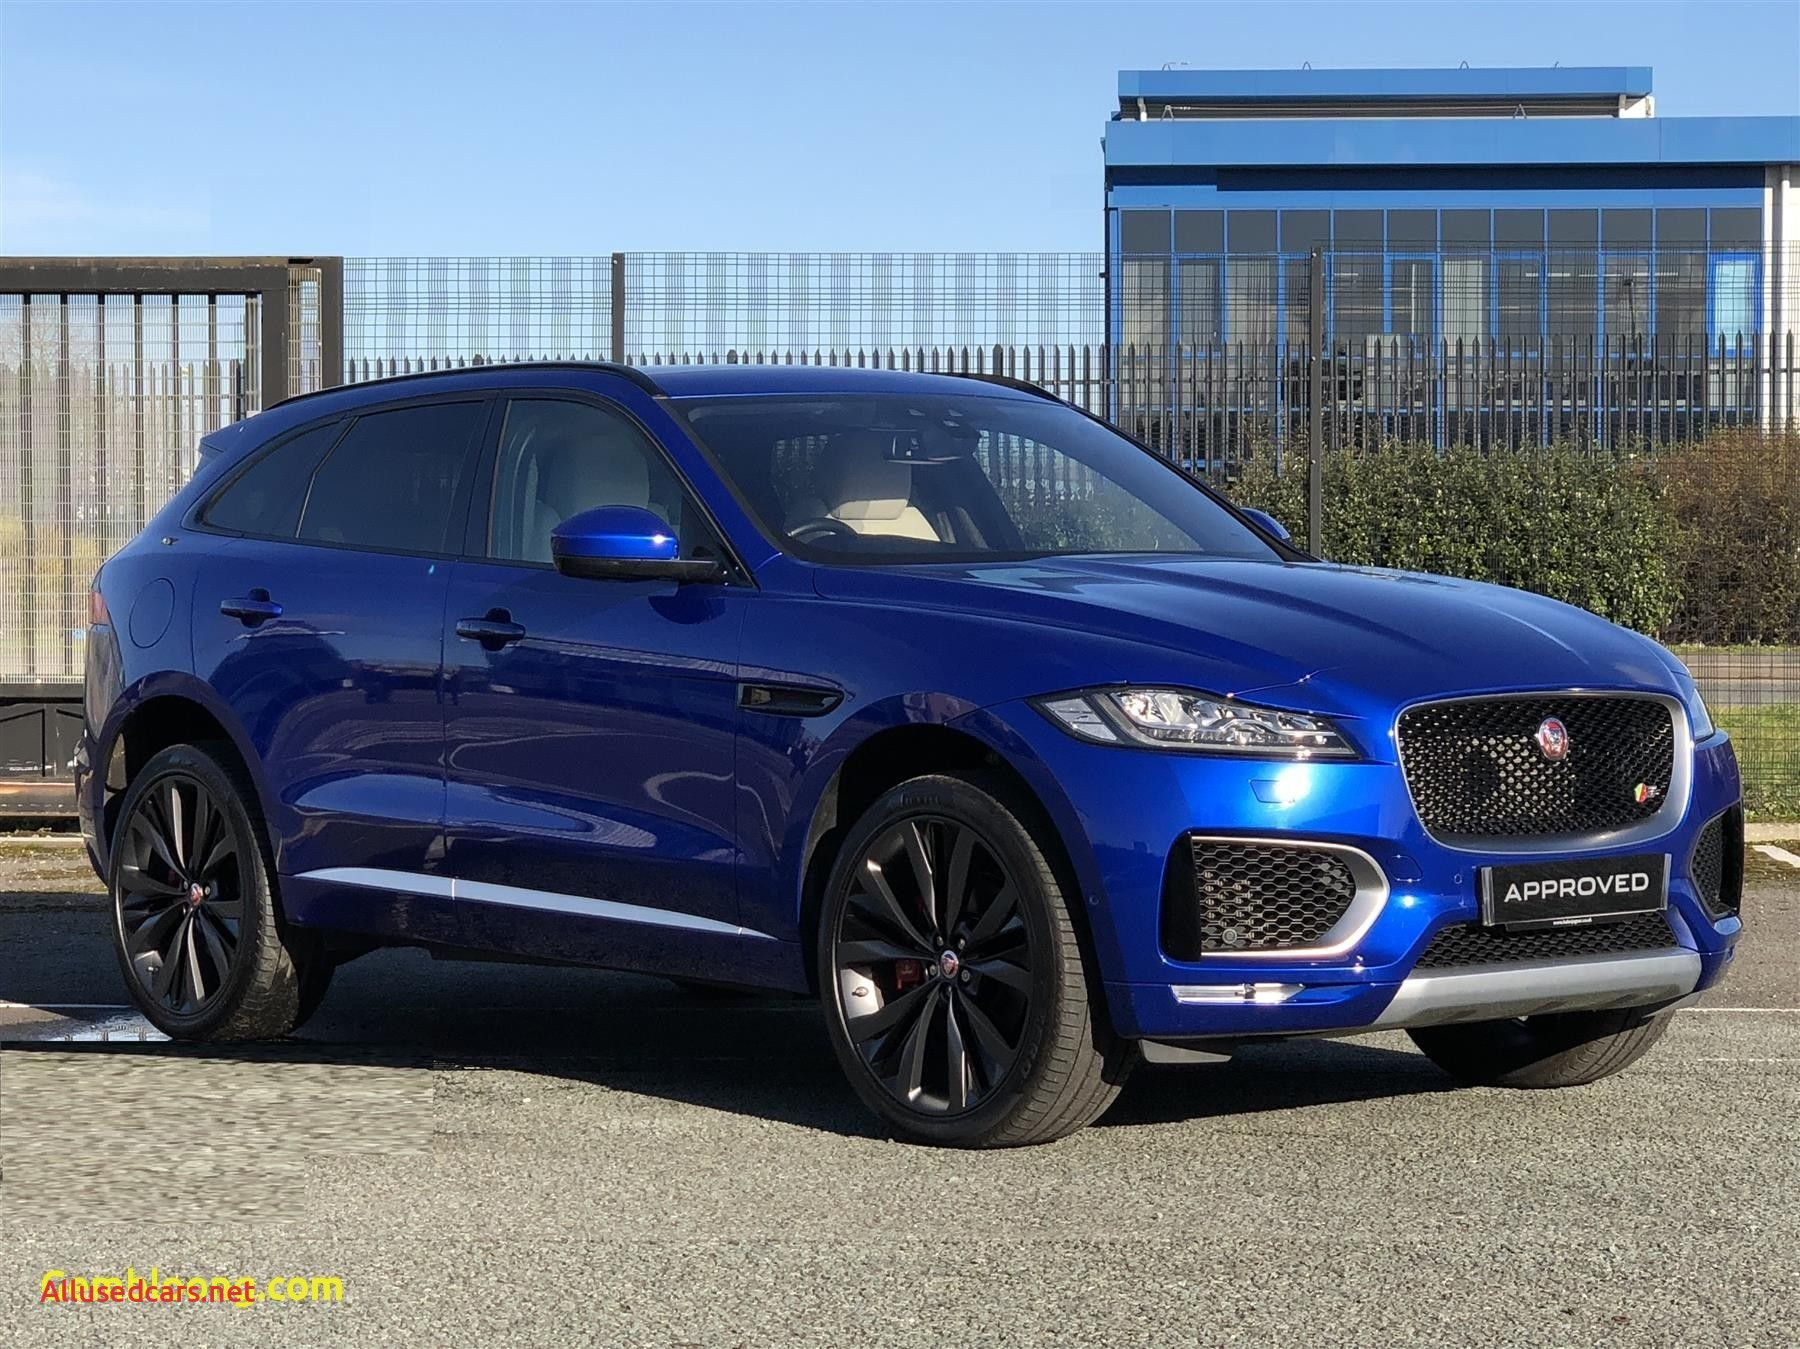 Jaguar Suv For Sale Beautiful Beautiful New Cars For Sale Near Me Pleasant For You To My Best Used Luxury Cars Jaguar Suv Used Luxury Cars